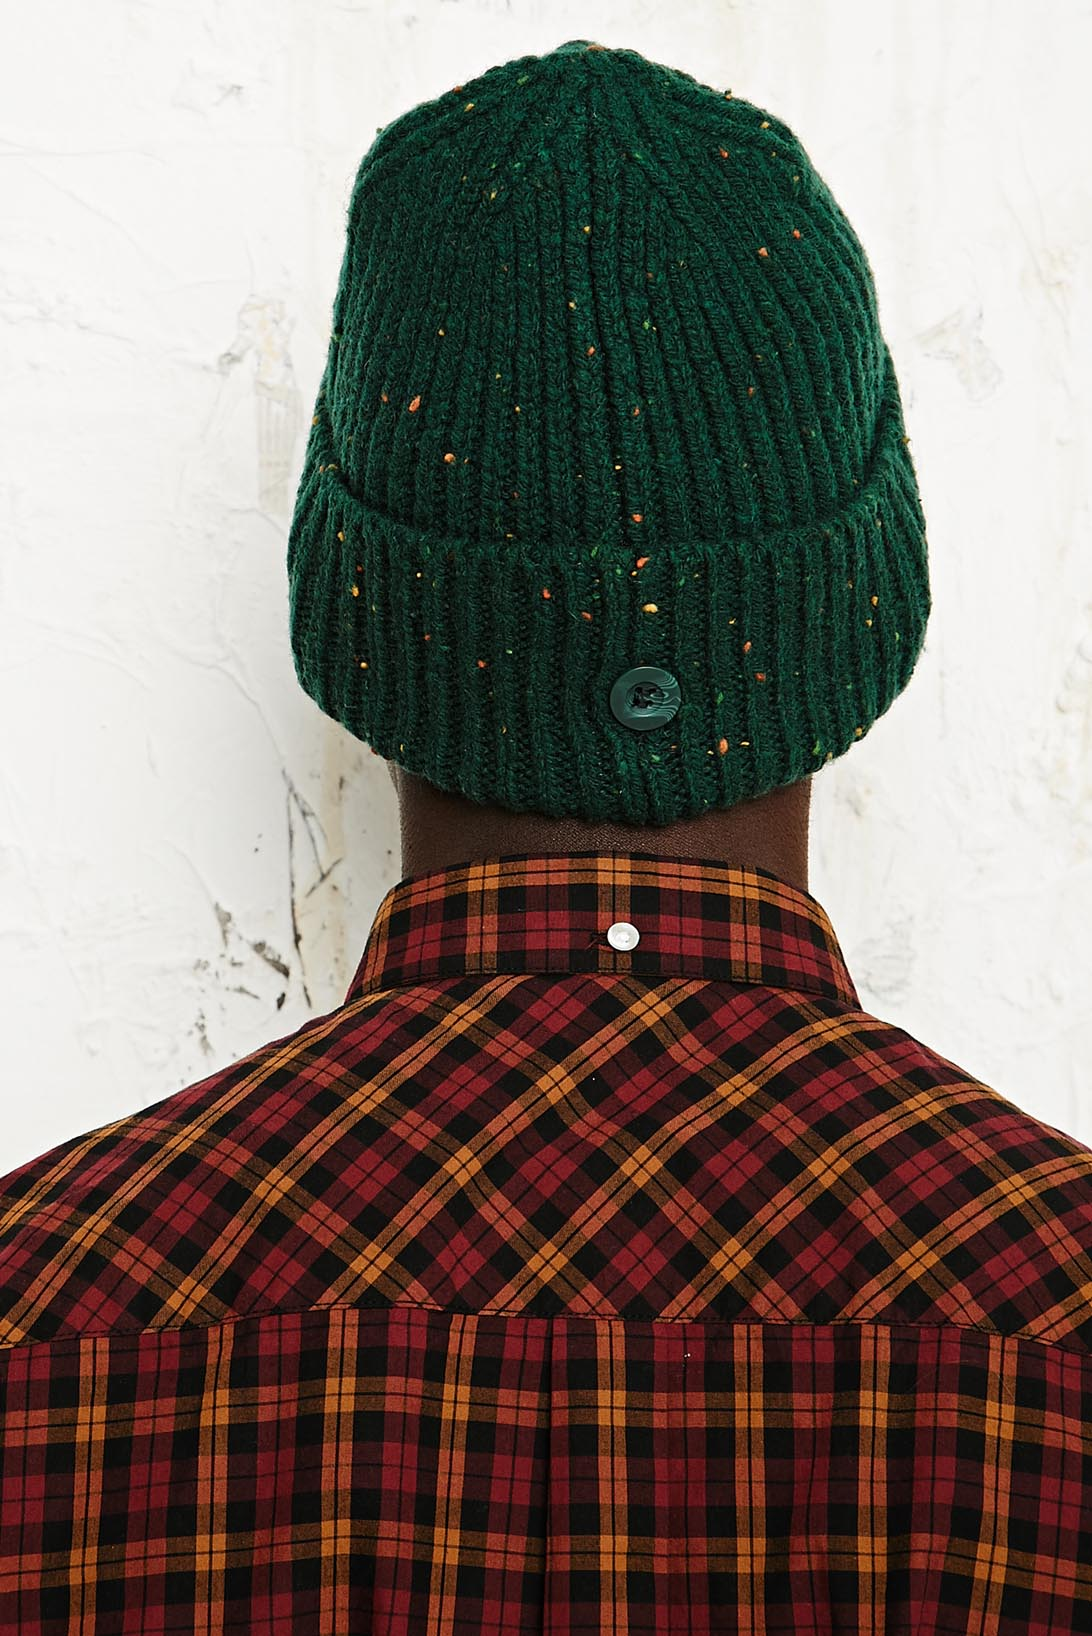 49c7fa431 Carhartt Anglistic Beanie Hat in Green for Men - Lyst